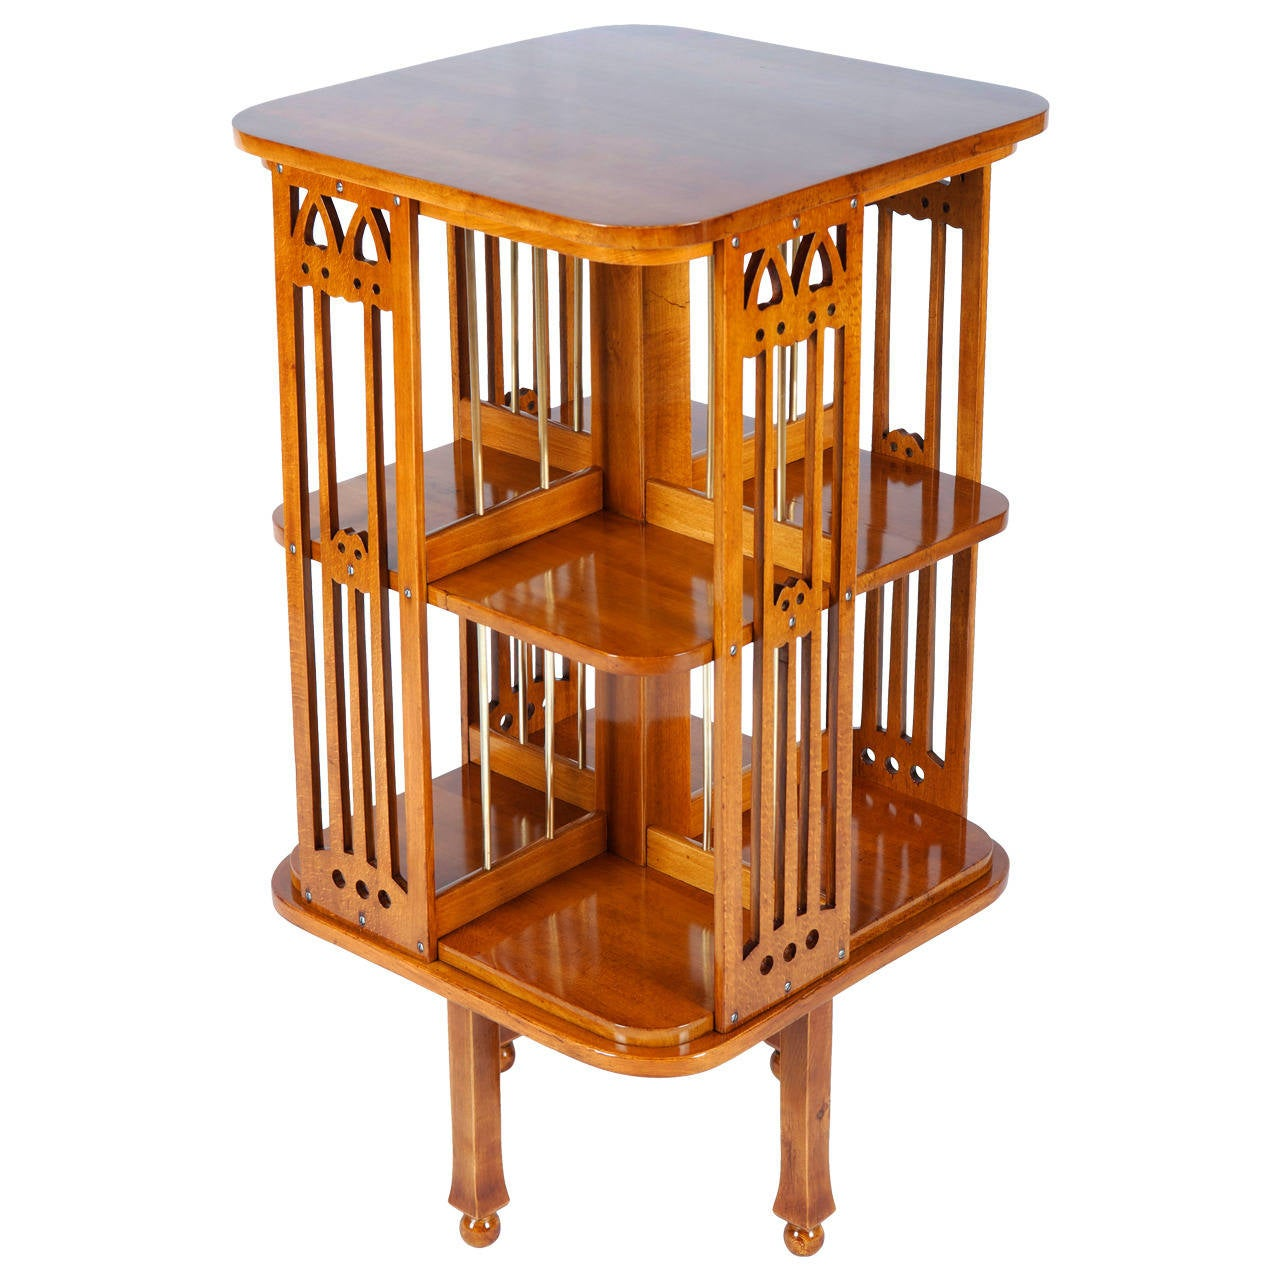 Very Rare Thonet Revolving Bookcase Attributed To Josef Hoffmann 1